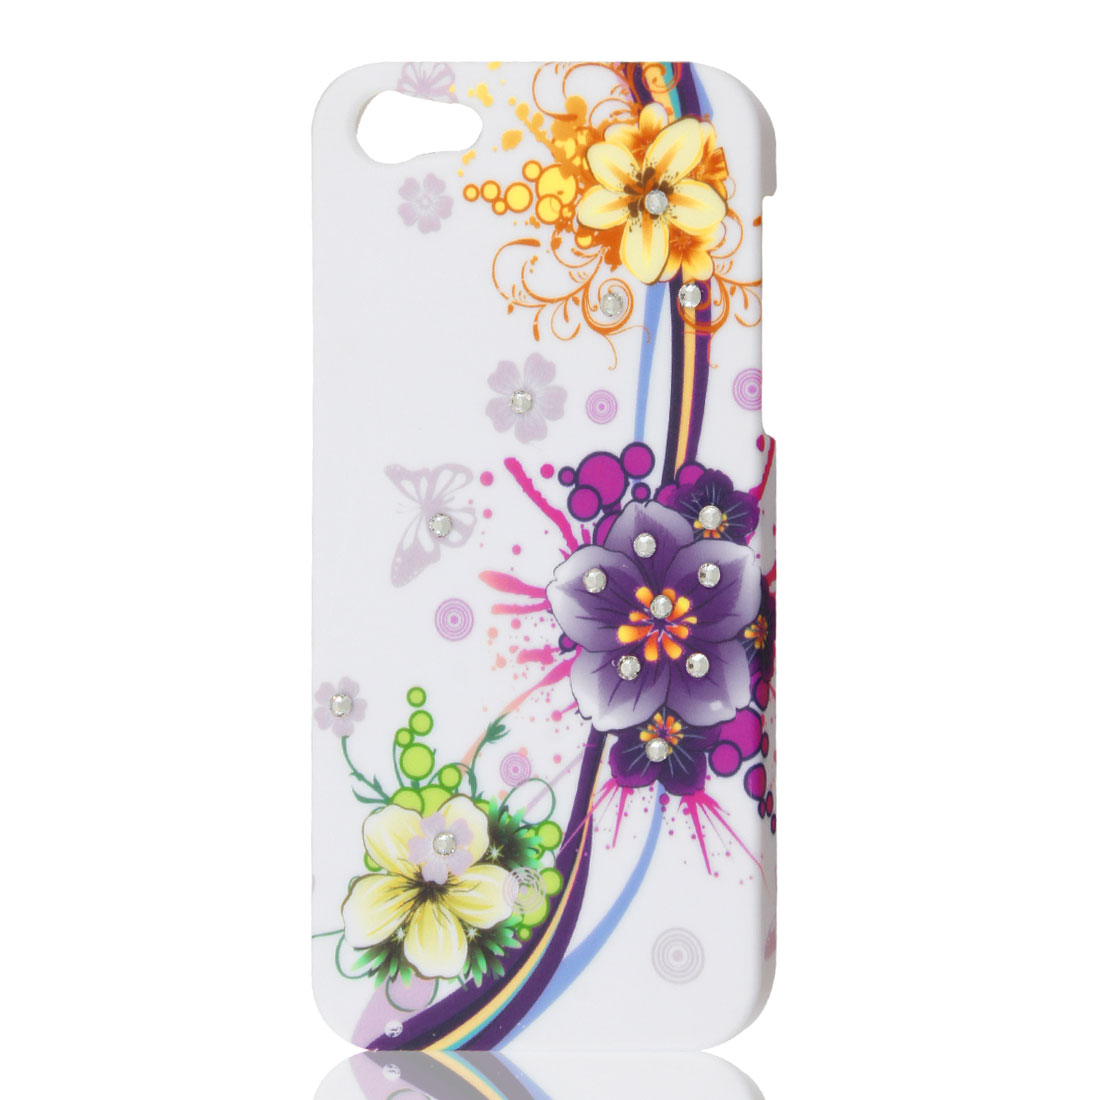 Multicolor Flower Bling Sparkling Rhinestone Hard Back Case Cover for iPhone 5 5G